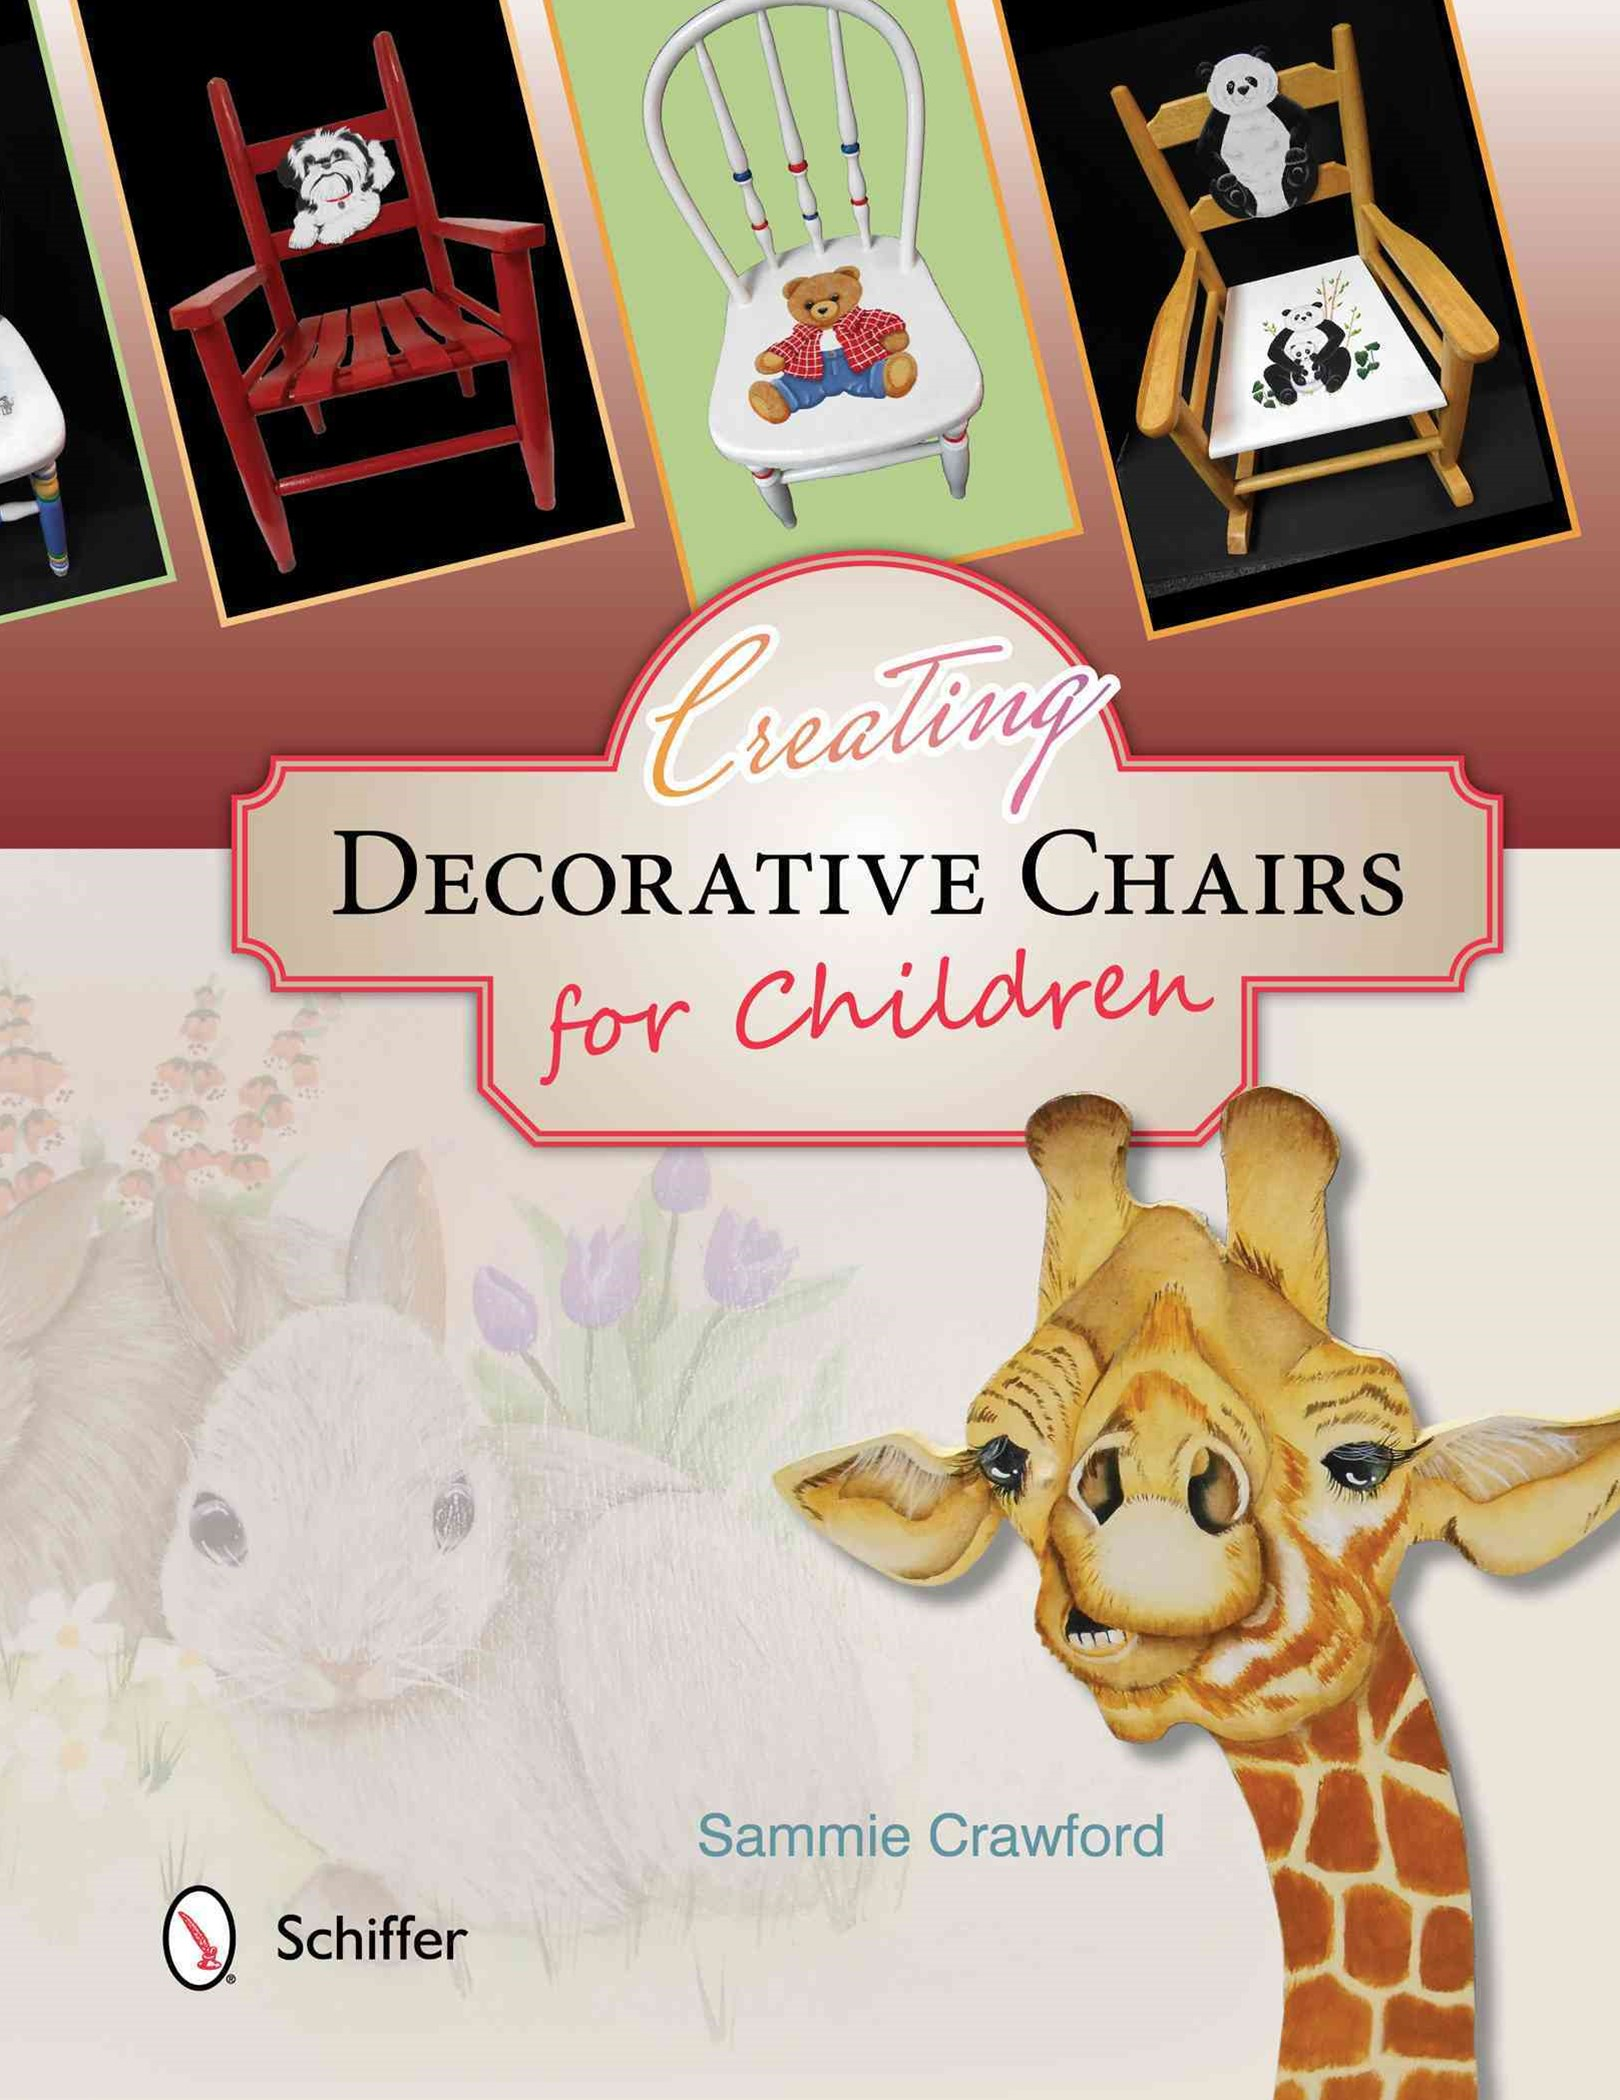 Creating Decorative Chairs for Children: 8 Painting Projects